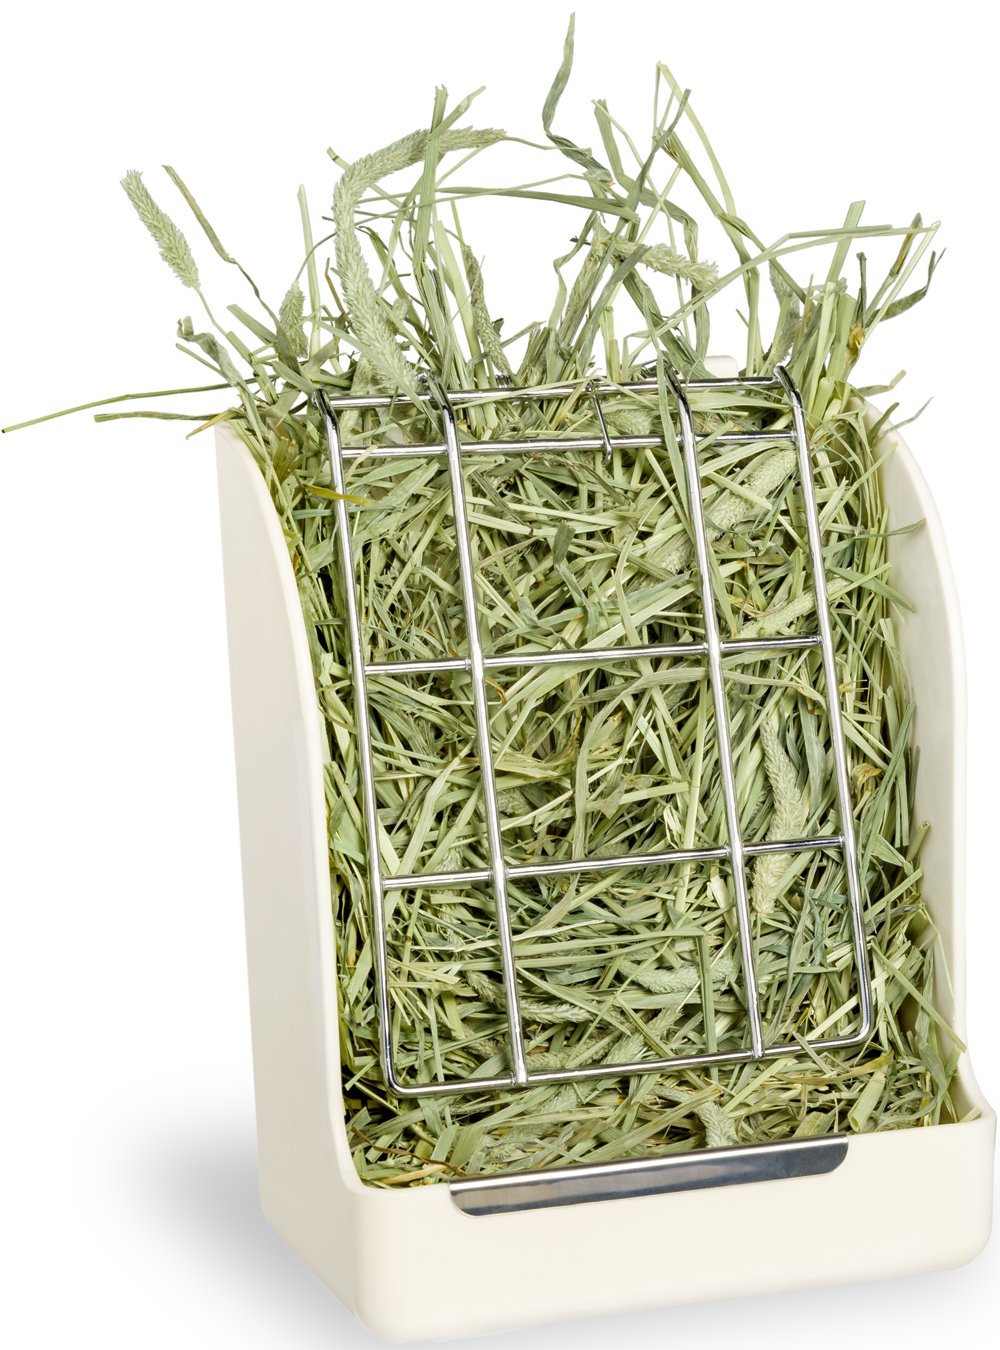 Mkono Hay Feeder Less Wasted Hay Rack Manger for Rabbit Guinea Pig Chinchilla by Mkono